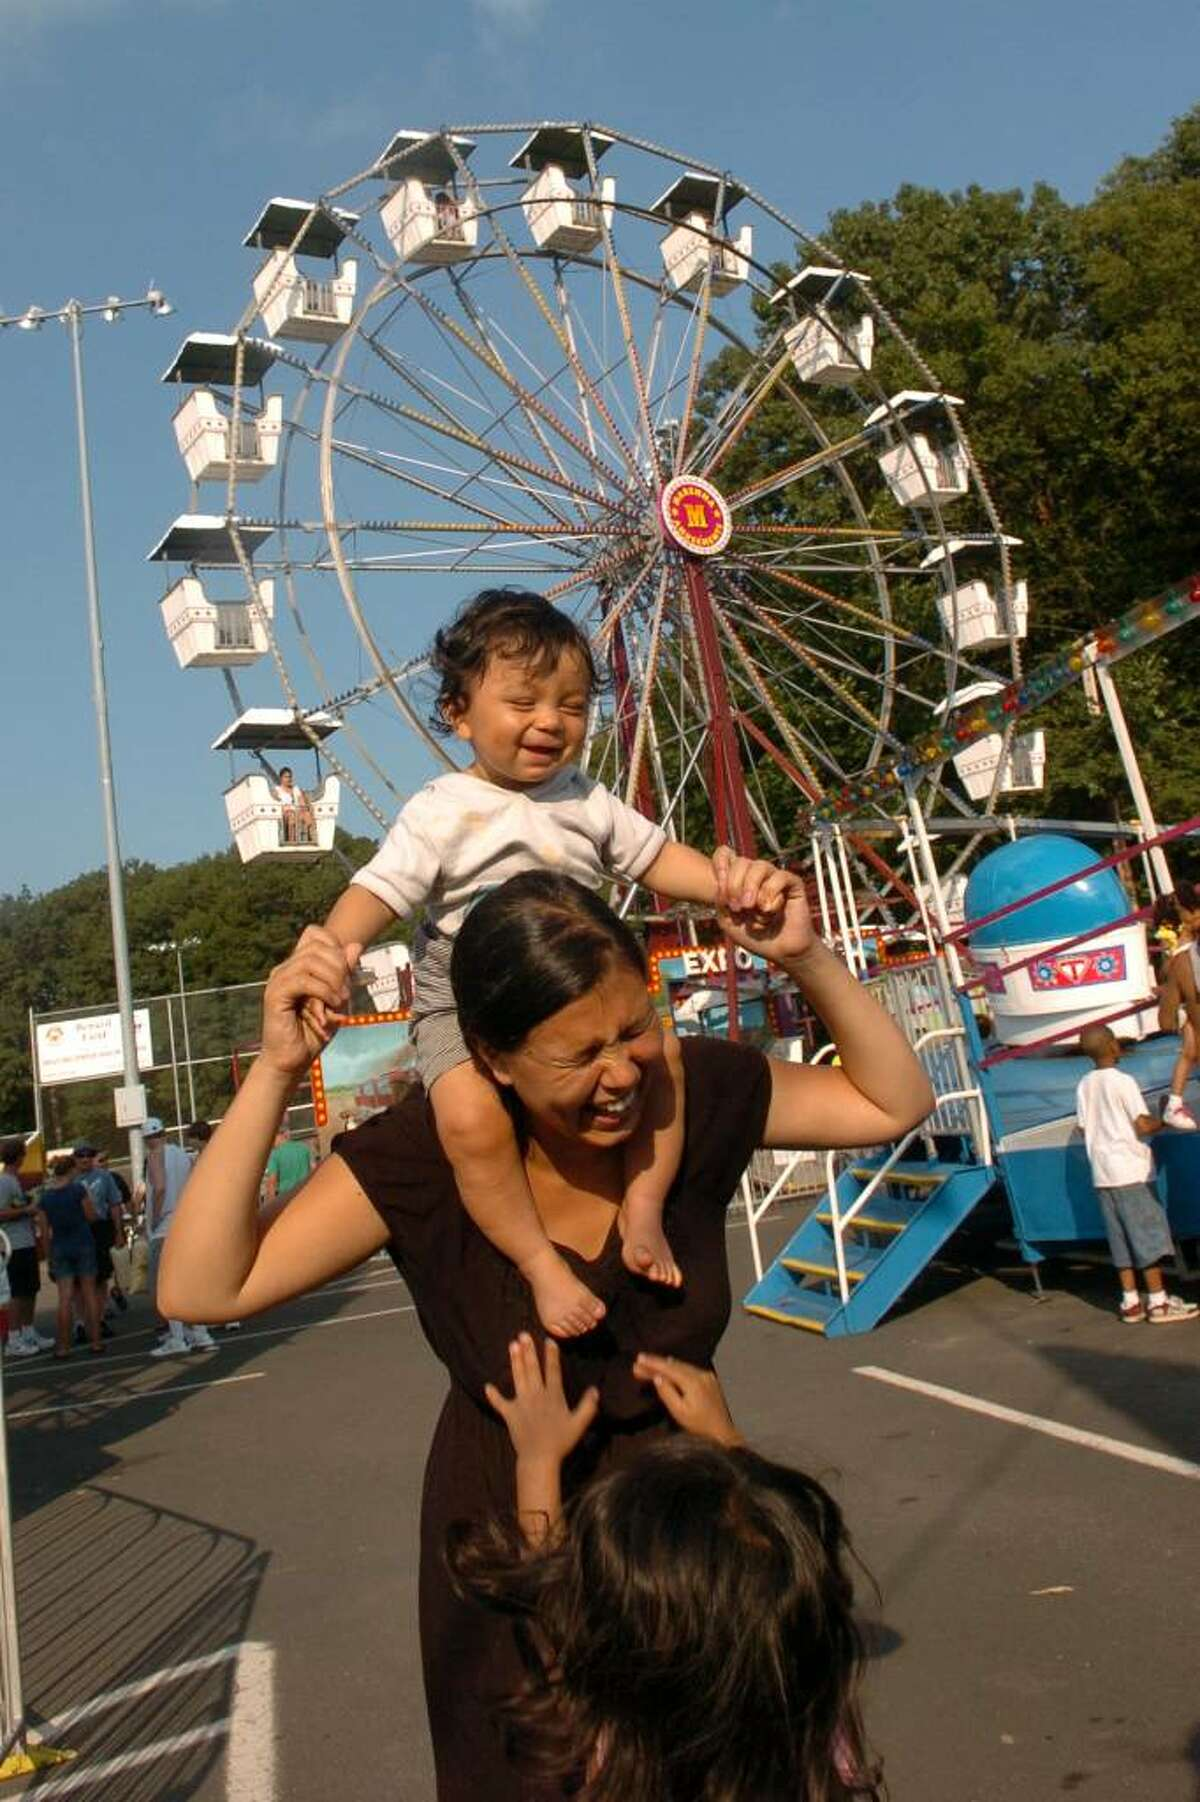 Christian Abraham/Staff photographer Members of the Shah family enjoy the amusements, during the Milford Oyster Festival in downtown Milford, CT on Saturday August 15, 2009. Here, Nadine Shah, of Milford, holds her son Miro, 9 months, on her shoulders as her daughter Amila, 4, jumps up for a turn to be held. Not pictured is Nadine's husband, Atit, who was snapping pictures of them also.